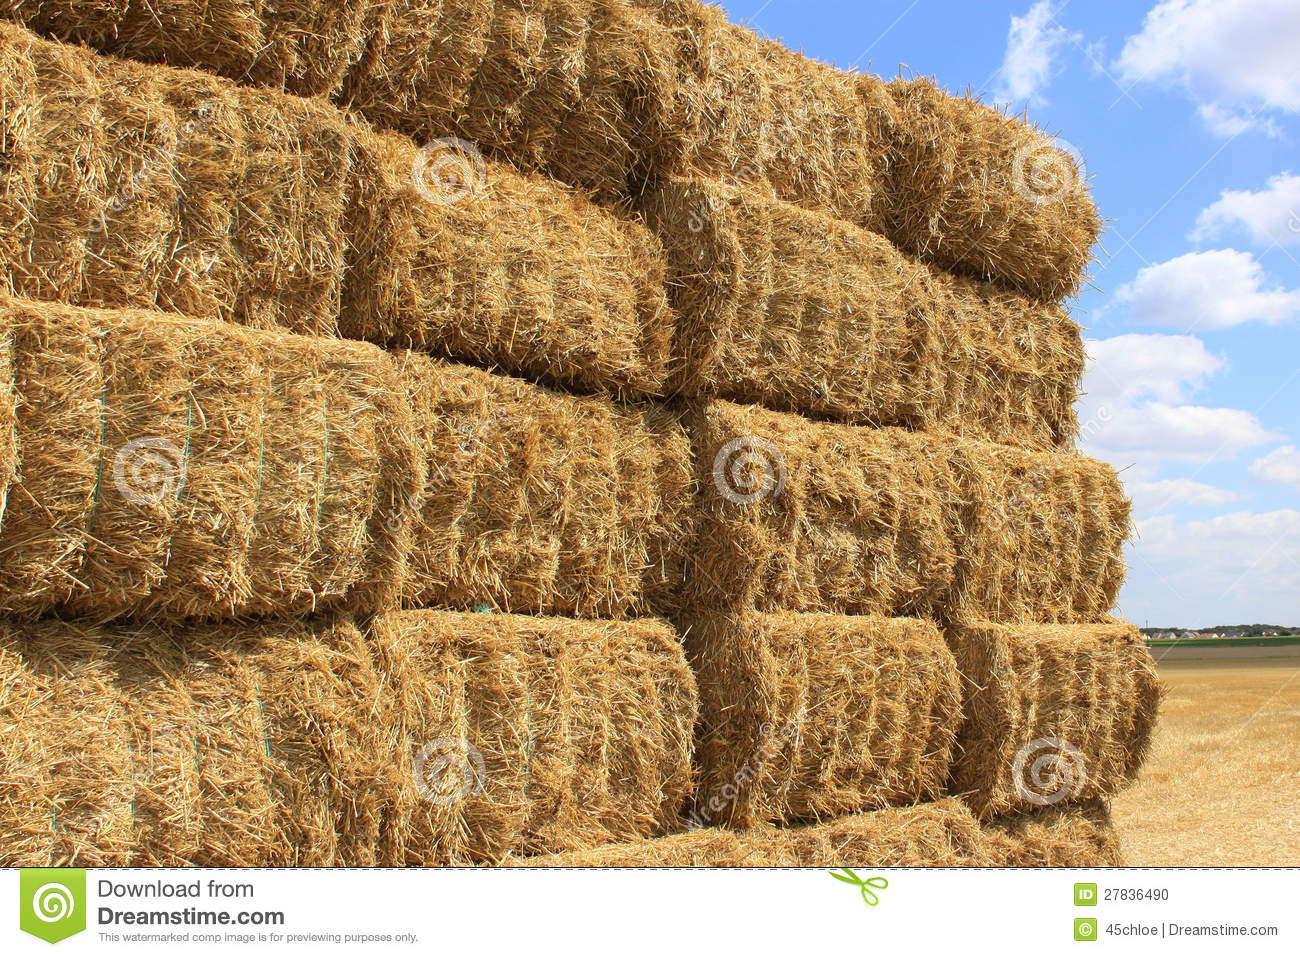 Many haystacks piled on a field of wheat.